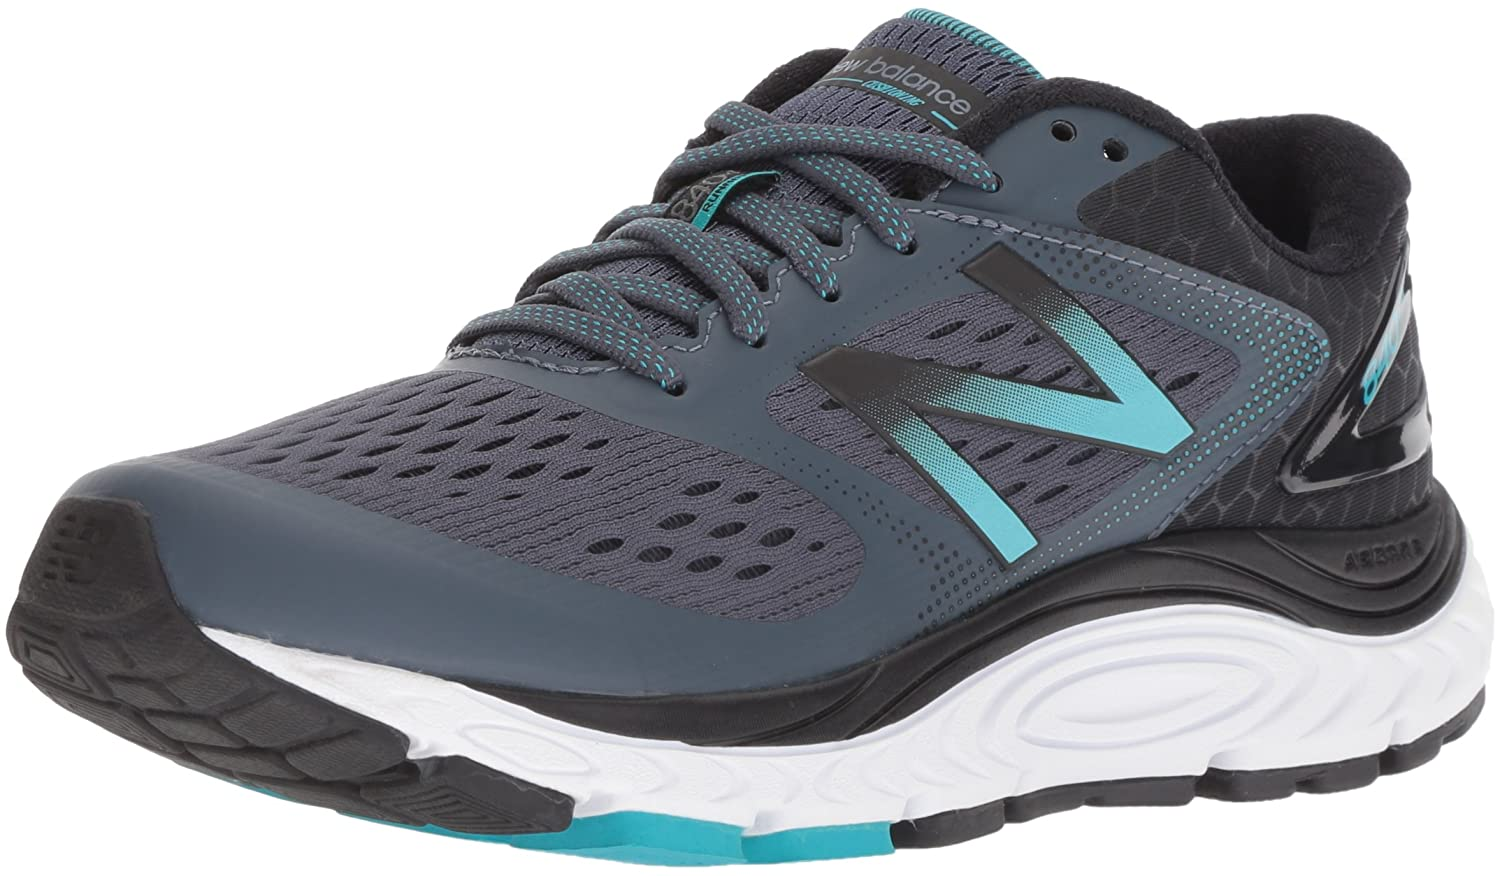 New Balance Women's 840v4 Running Shoe B01MTYYYCF 10 2E US|Dark Grey